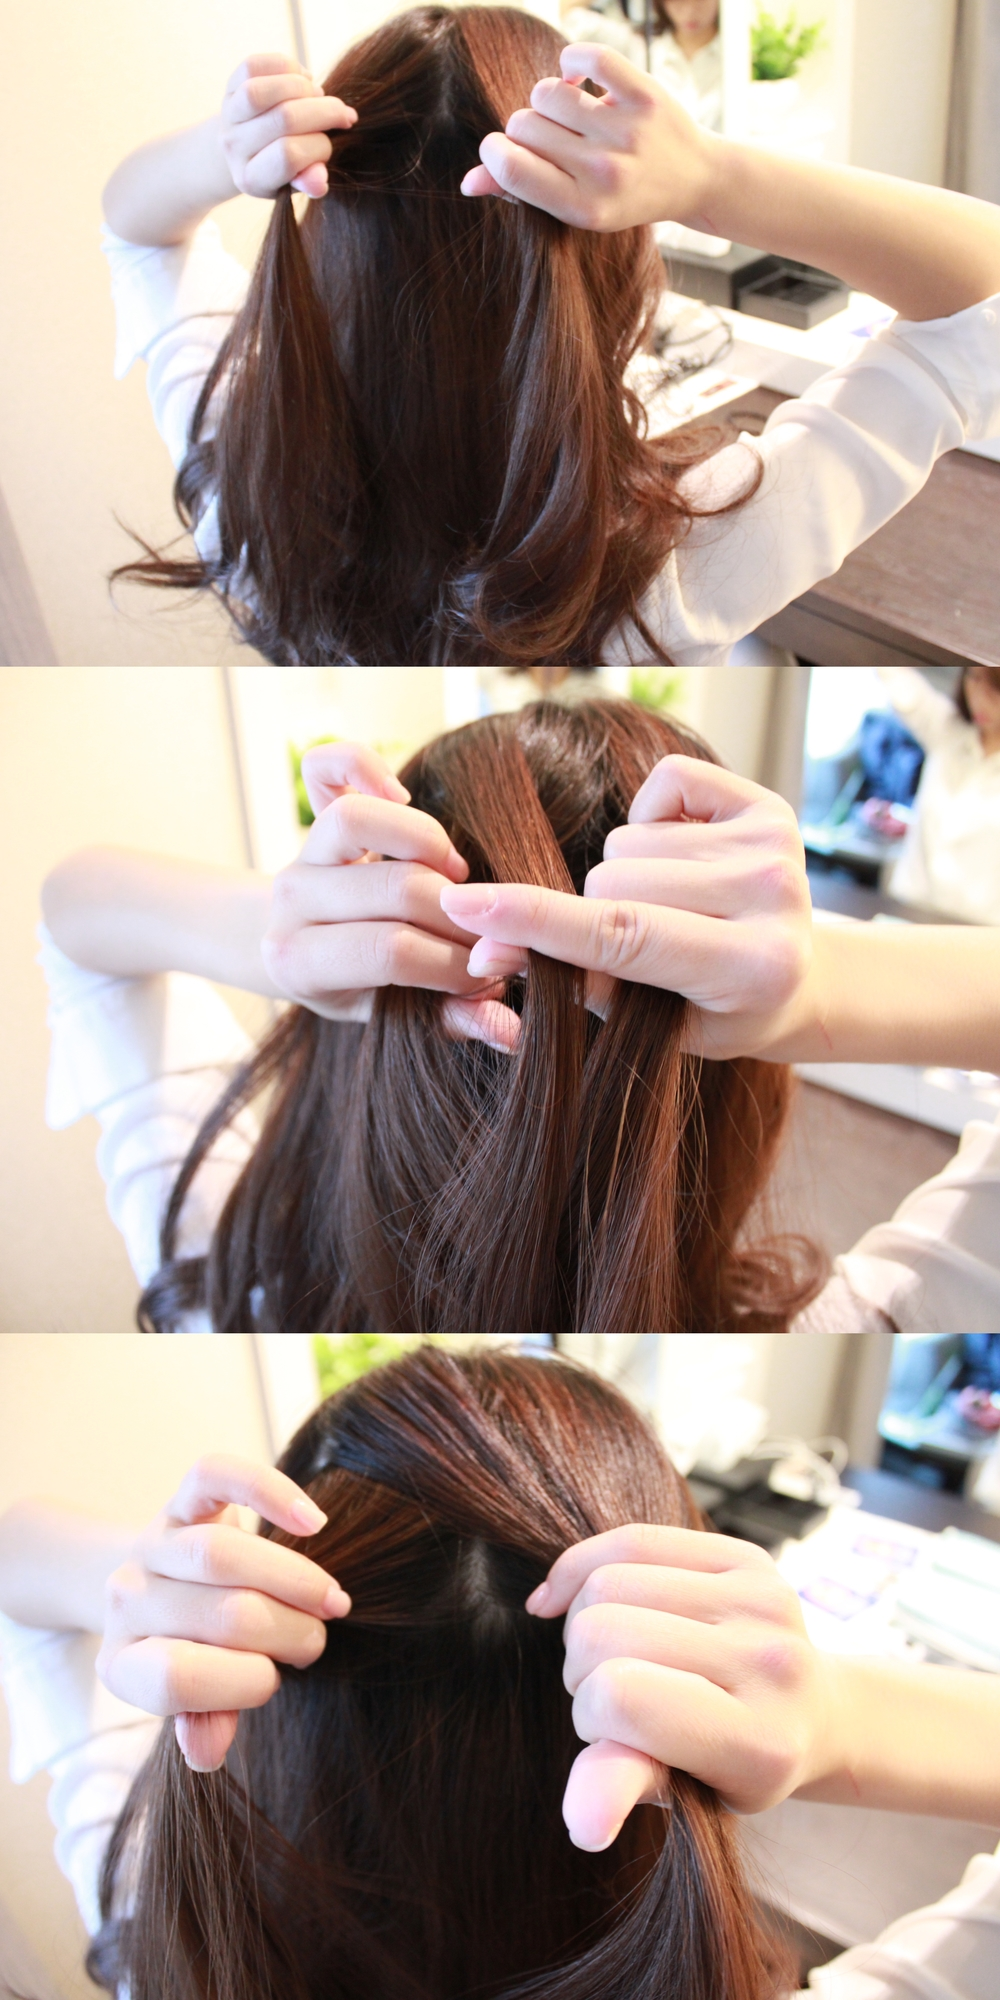 Take a strand of hair to do fishtail braid. Take a small strand from each the left and add it to the right (cross over the top) Repeat this step for the right side, add the small strand to the left. Do 3 crossovers.